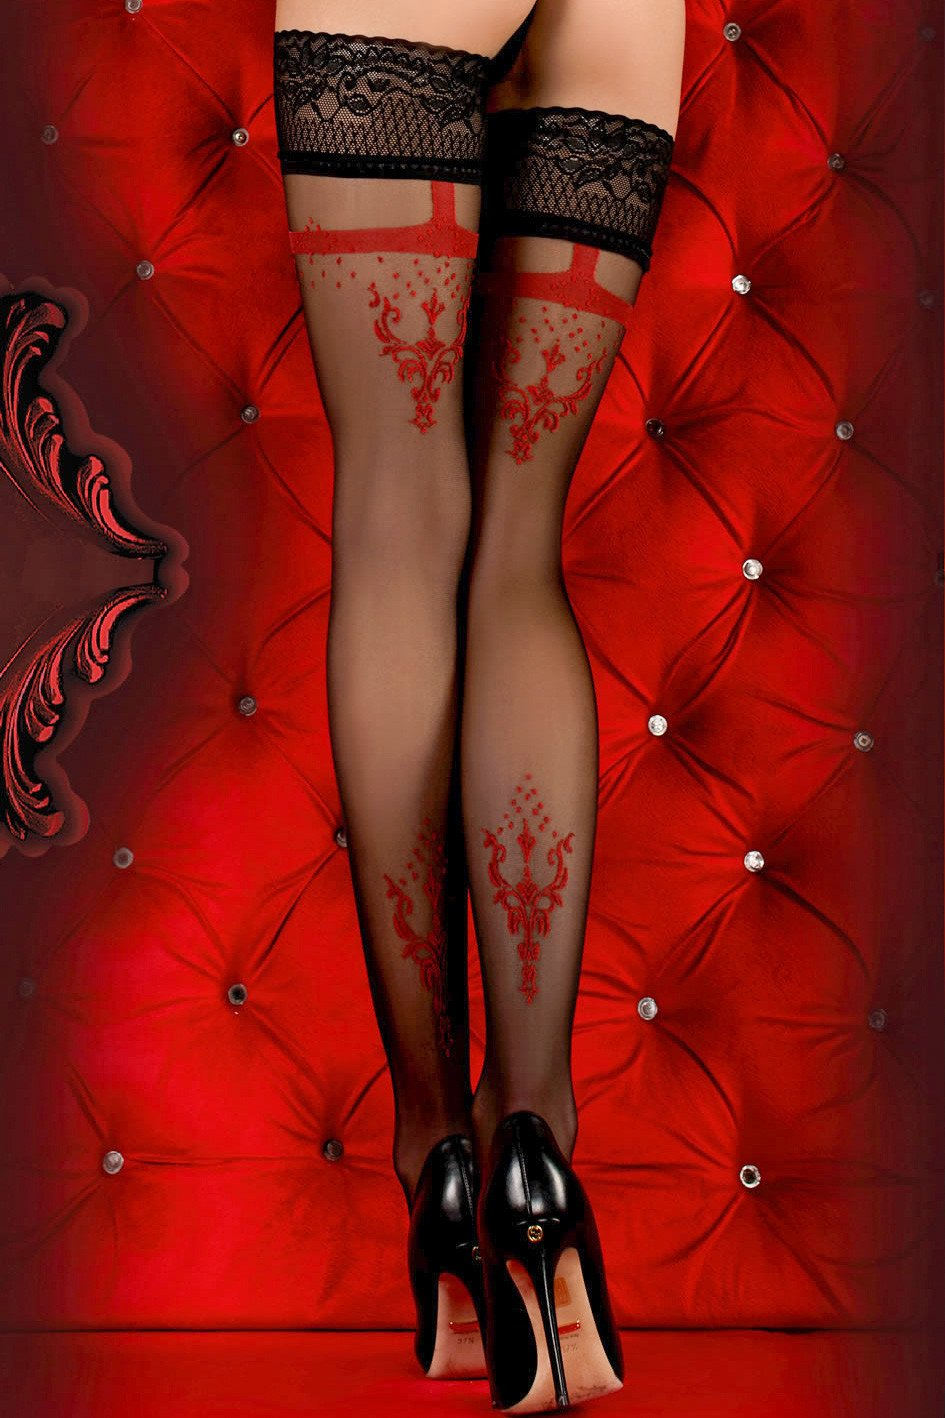 Ballerina Faux Suspender Floral Black/Red Hold Ups - The Hosiery Box